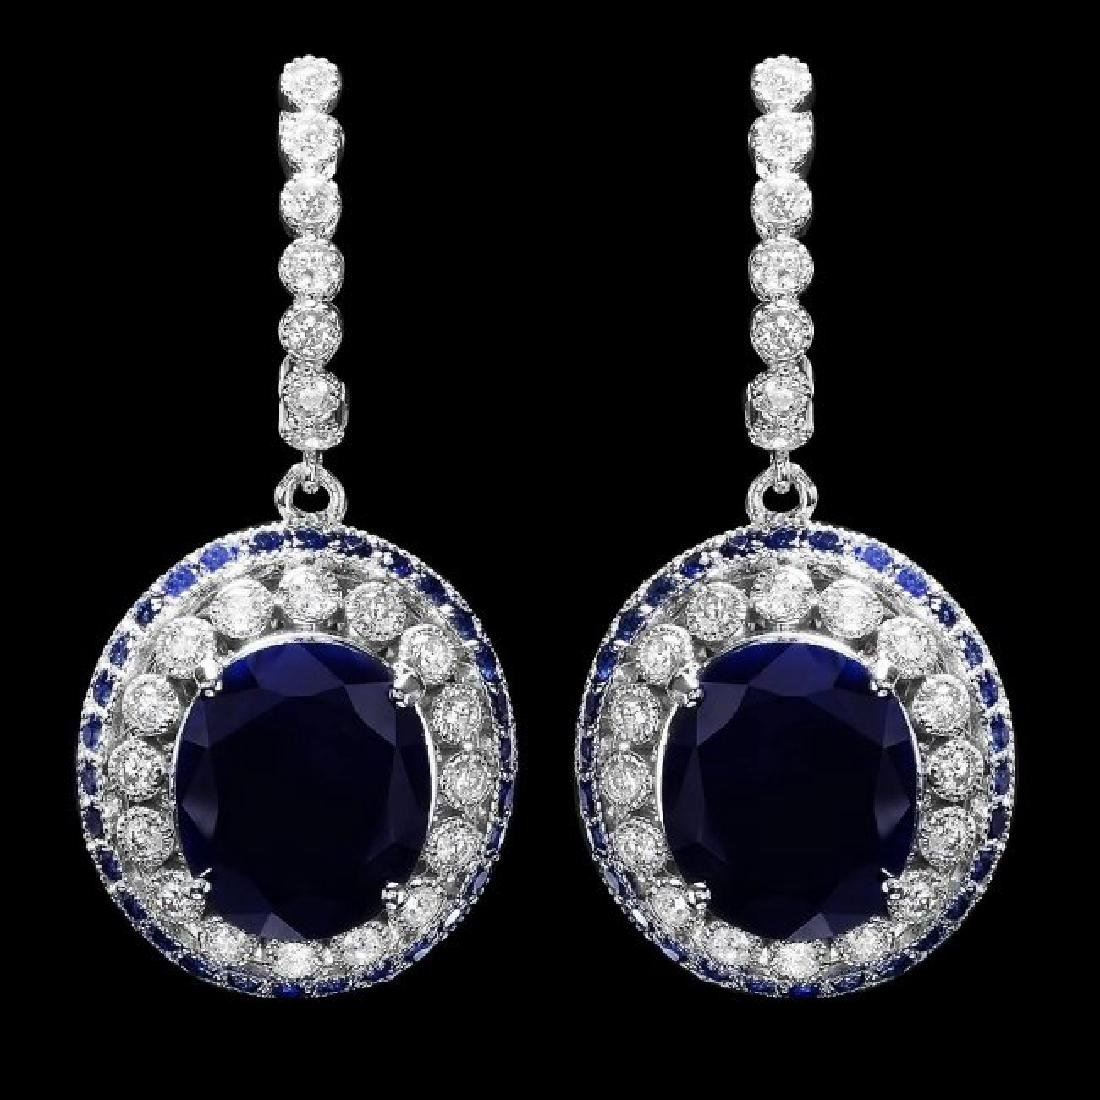 14k Gold 14.7ct Sapphire 1ct Diamond Earrings